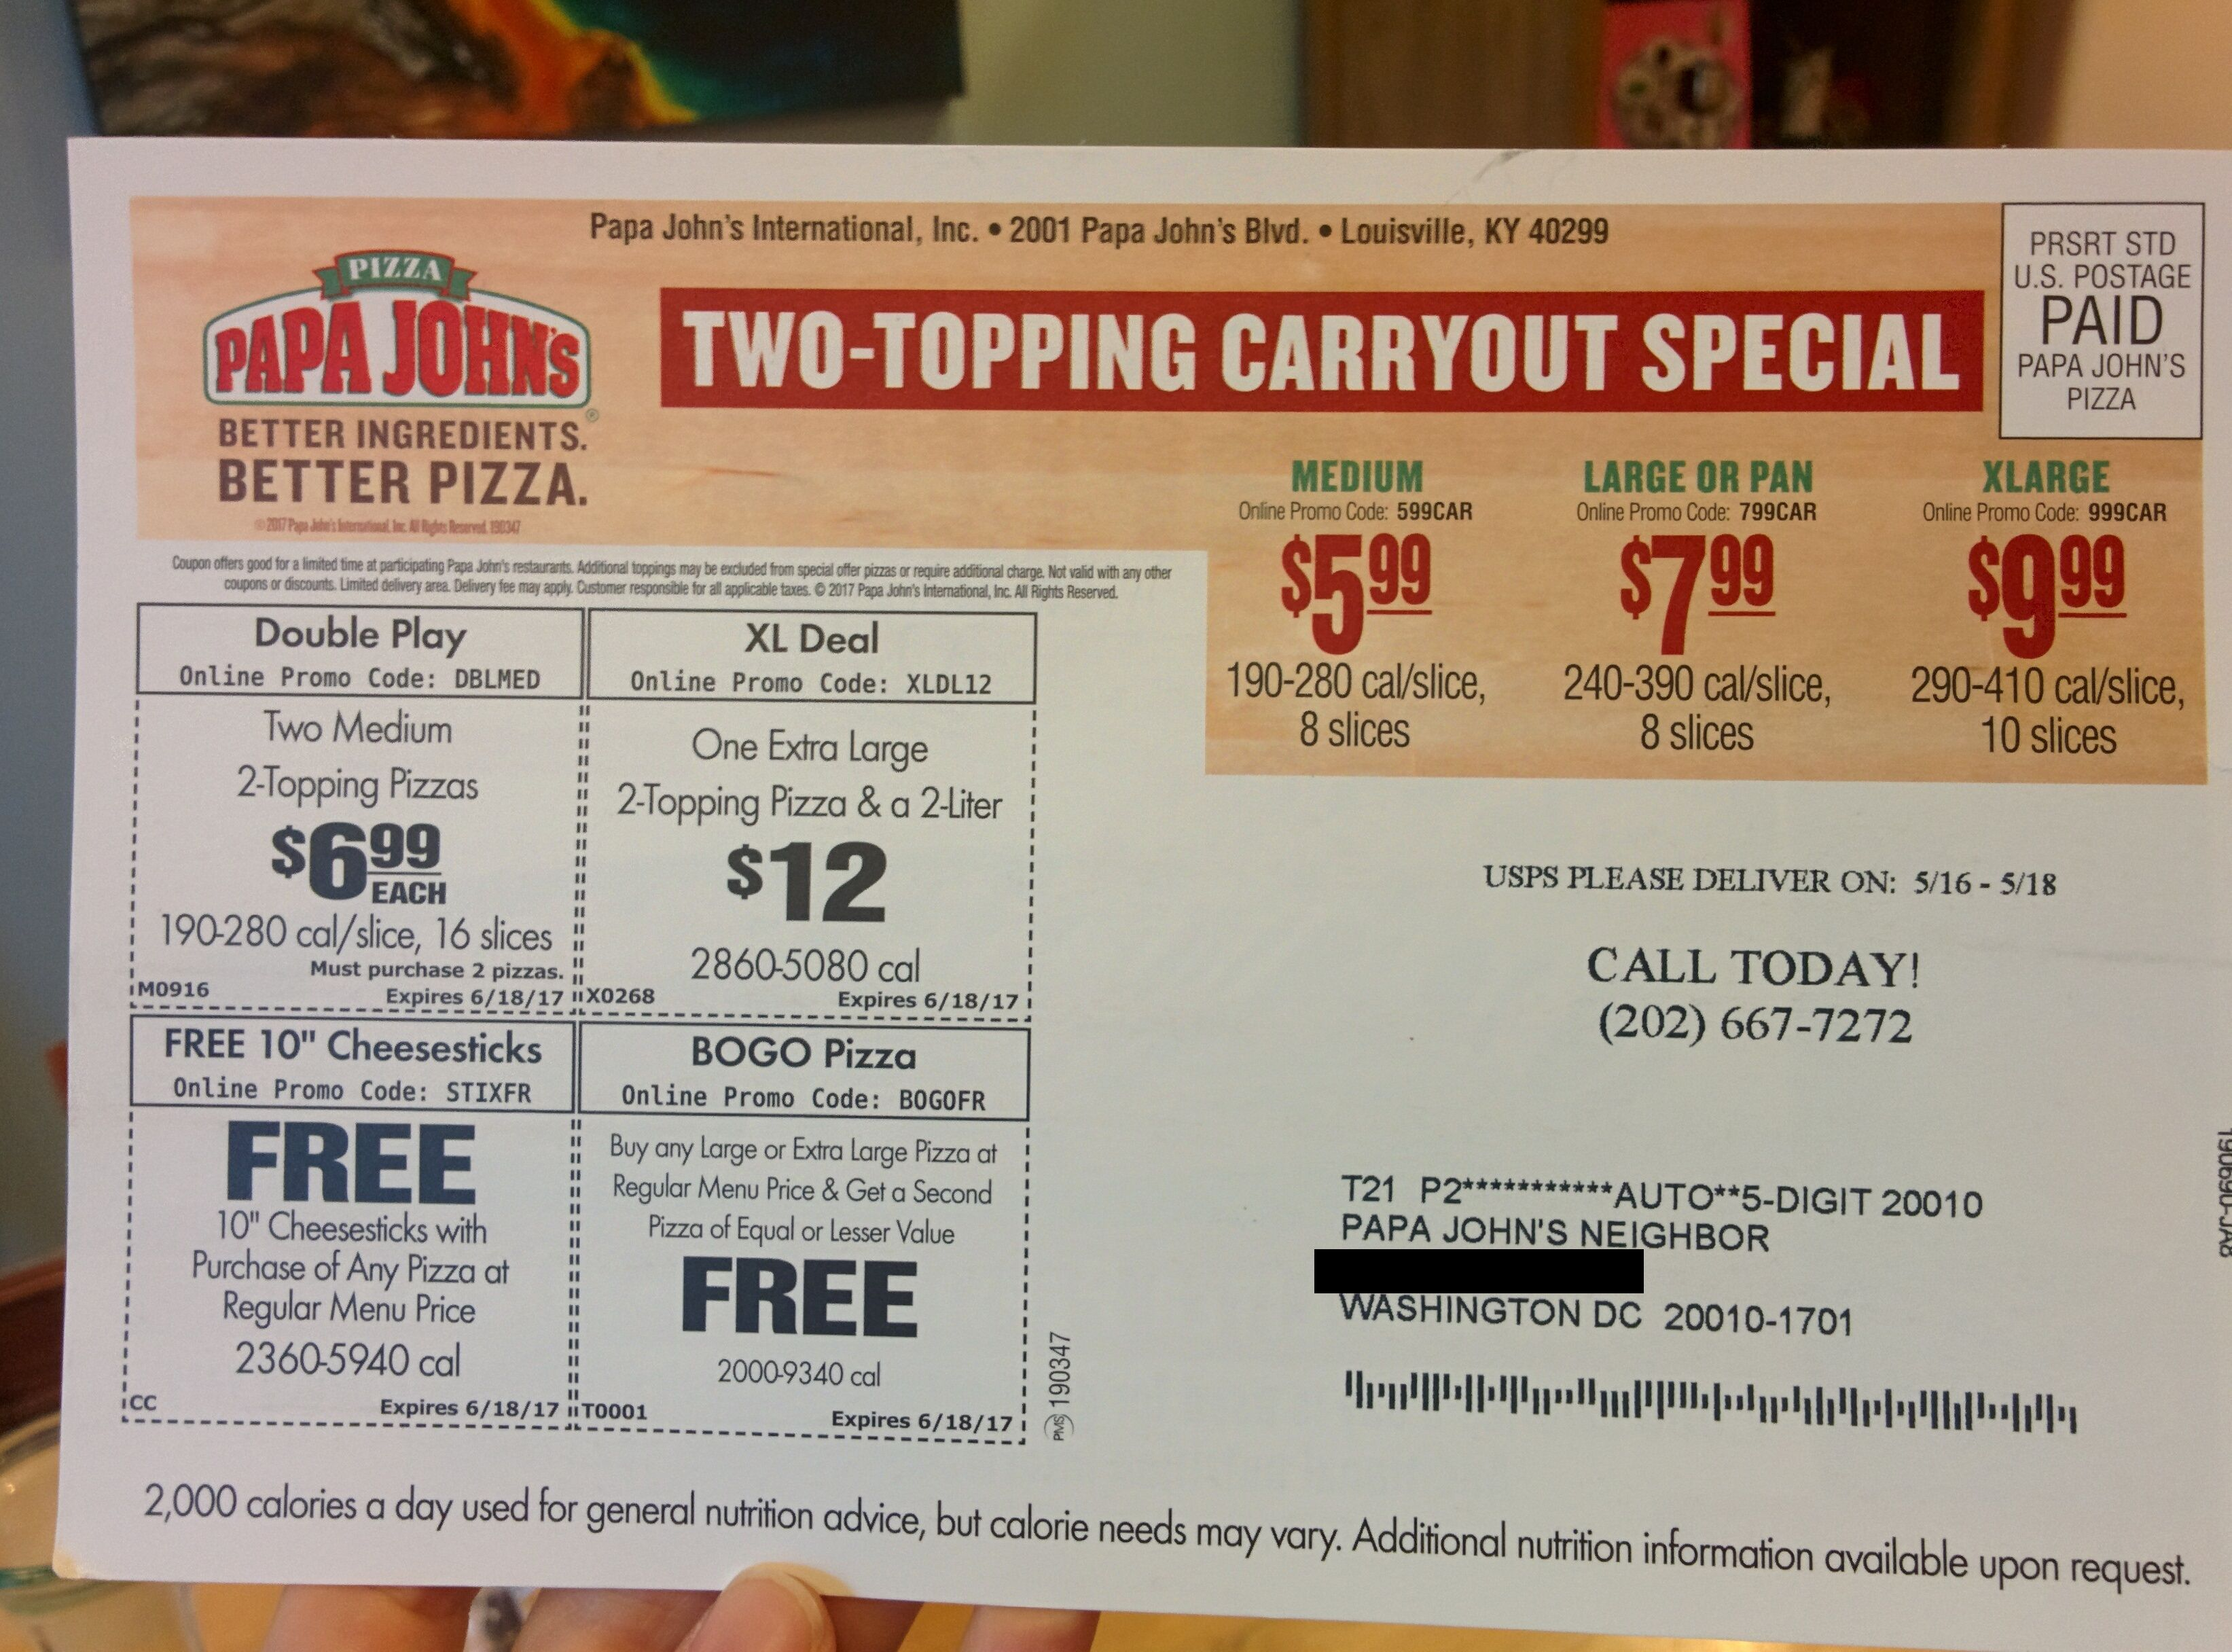 Papa Johns Washington Dc May 2017 Coupon Labeled Since It Is The Only Way Customer Can Order Phone Number Price Promo Codes Online Papa Johns Good Pizza